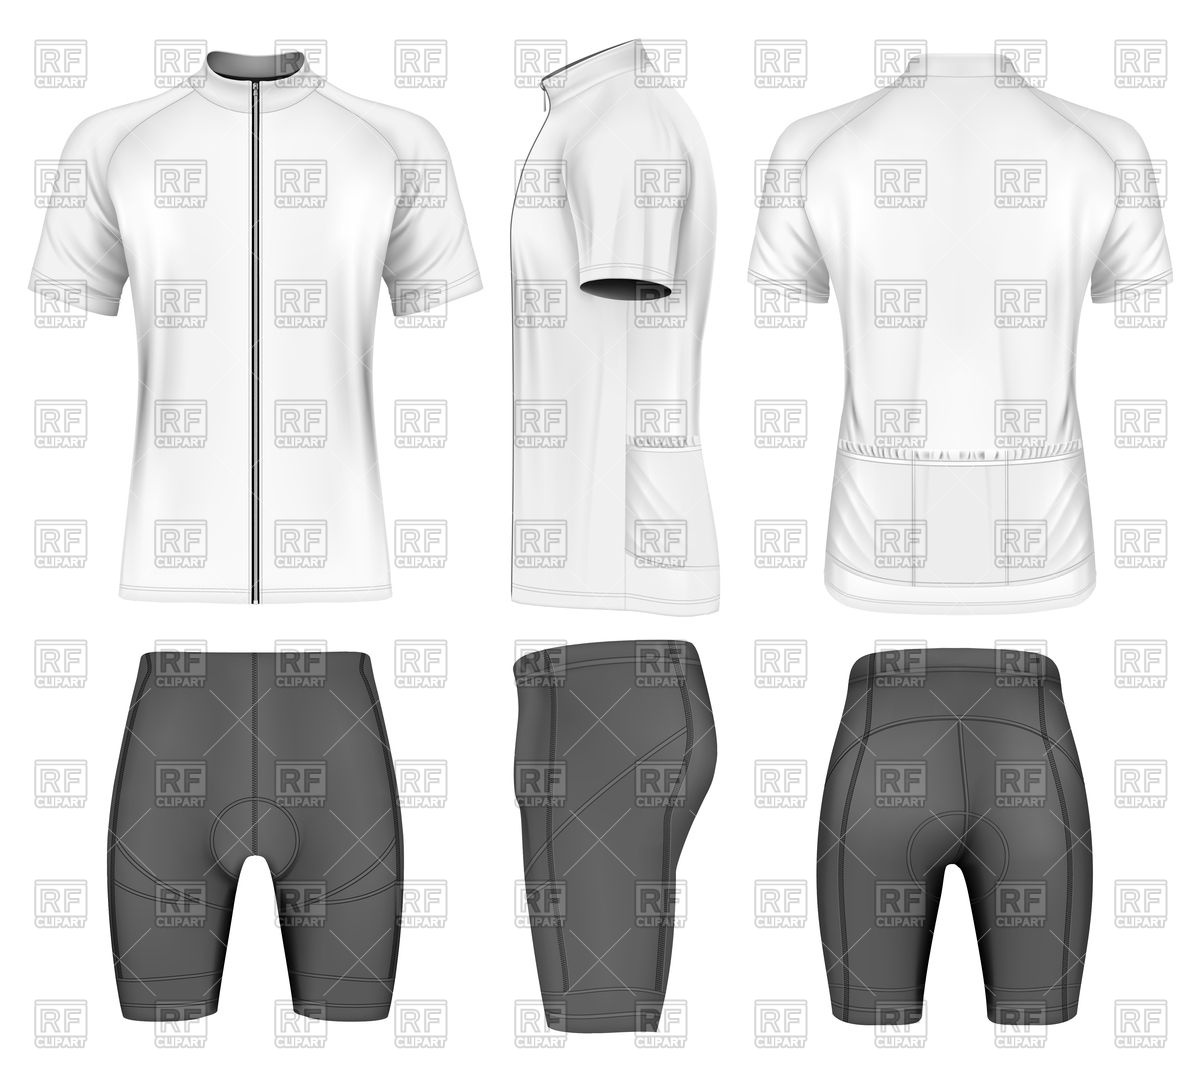 1200x1076 Cycling Clothes For Men Short Sleeve Cycling Jersey And Shorts